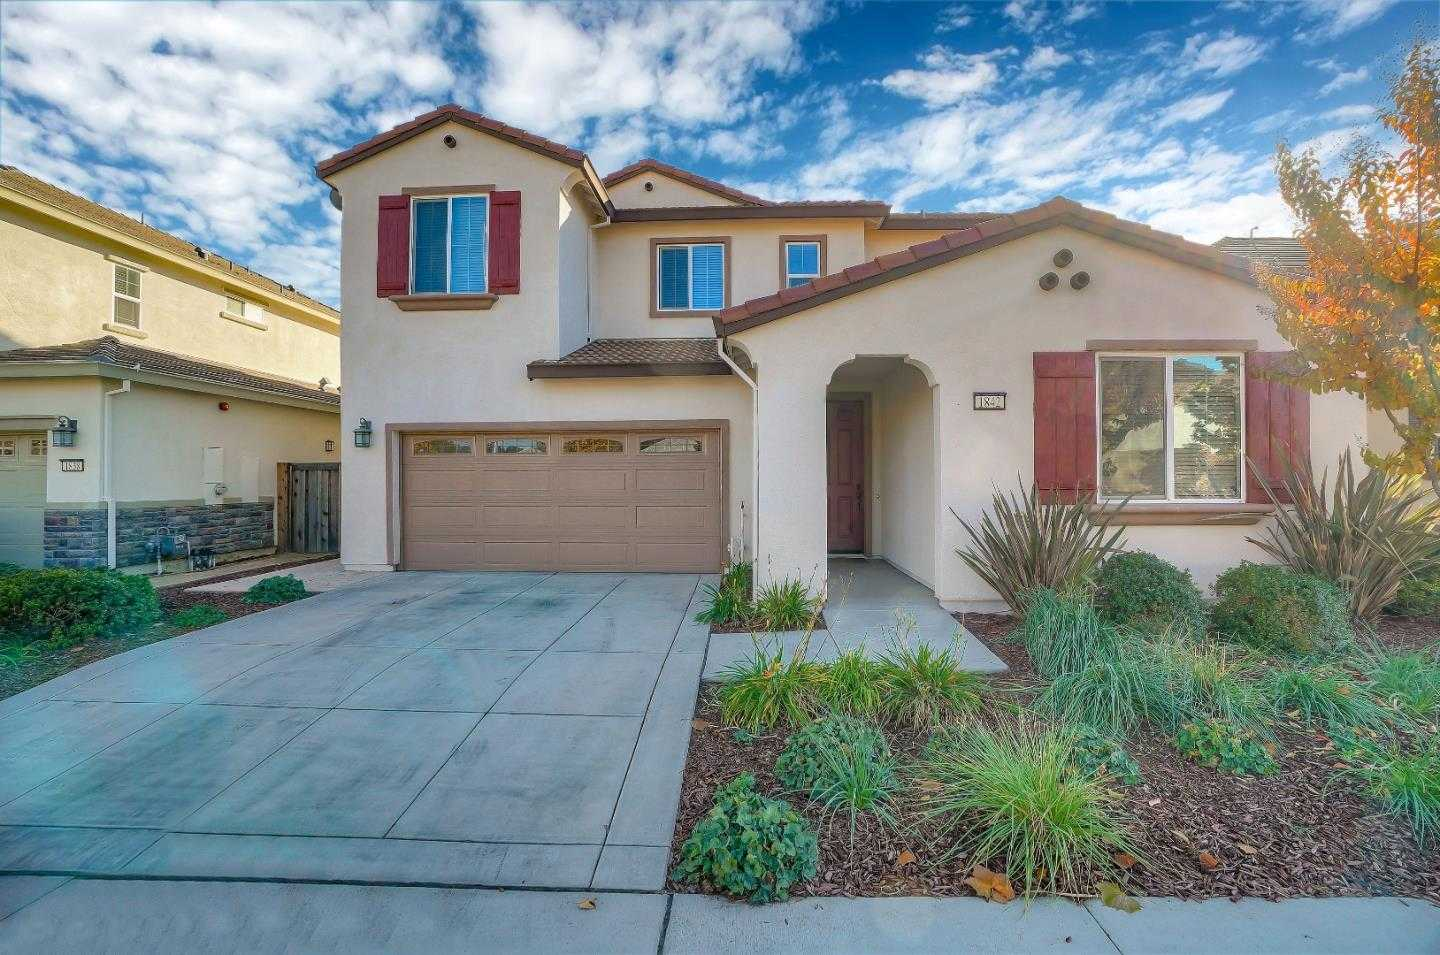 $1,040,000 - 5Br/5Ba -  for Sale in Gilroy